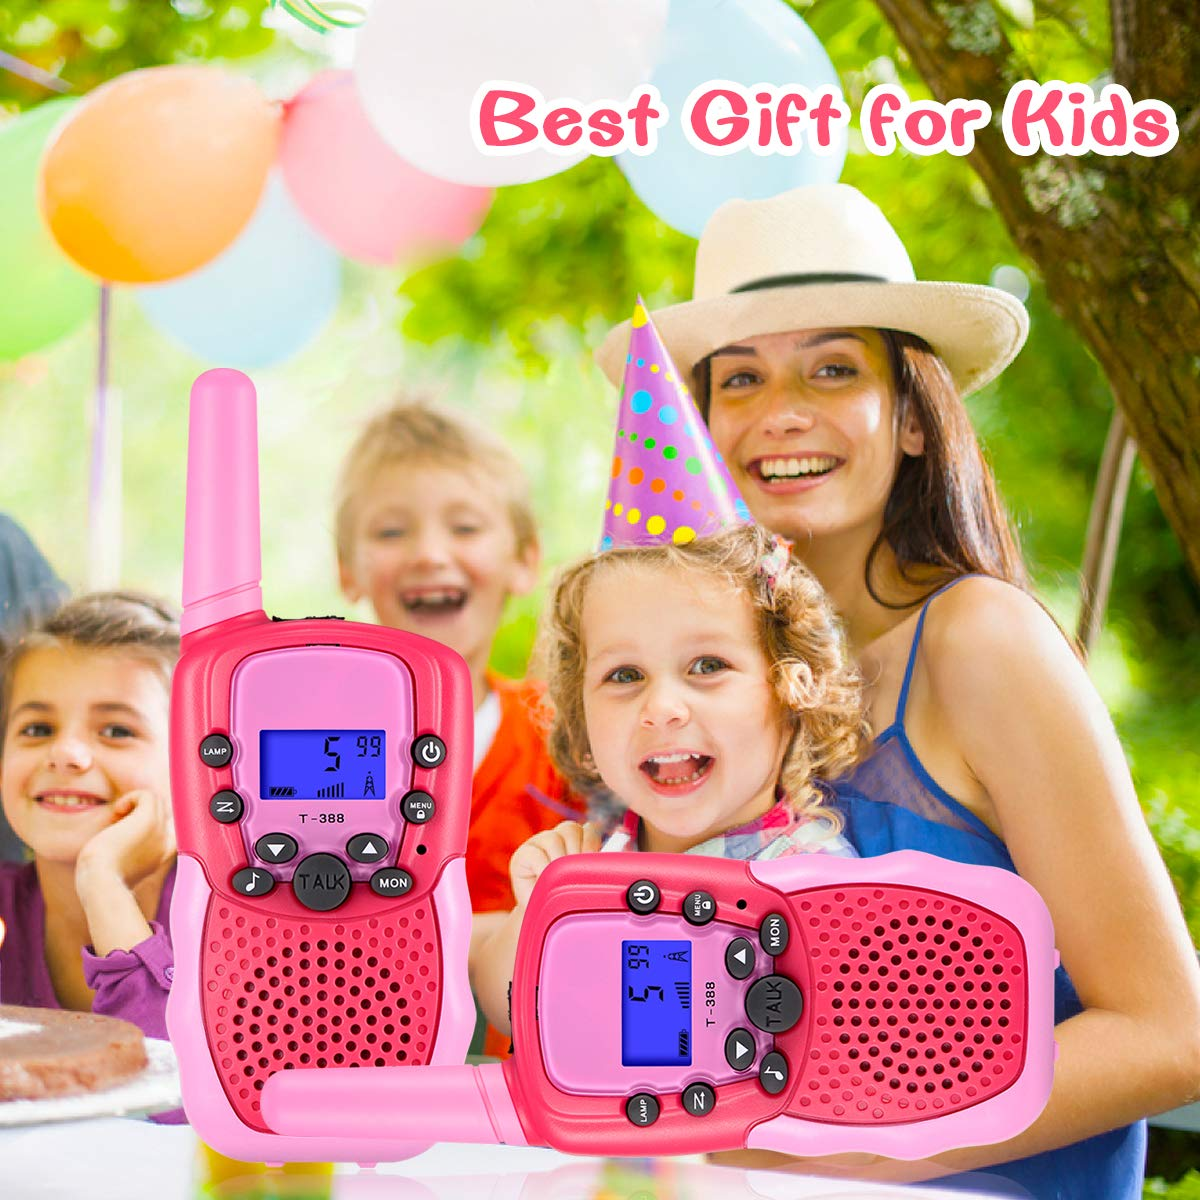 SnowCinda Toys for 3-12 Year Old Girls,Walkie Talkies for Kids with 22 Channels 2 Way Radio 3 Miles Long Range Toy for Outside Adventures, Best Gifts for 4-8 Year Old Boys and Girls by SnowCinda (Image #7)